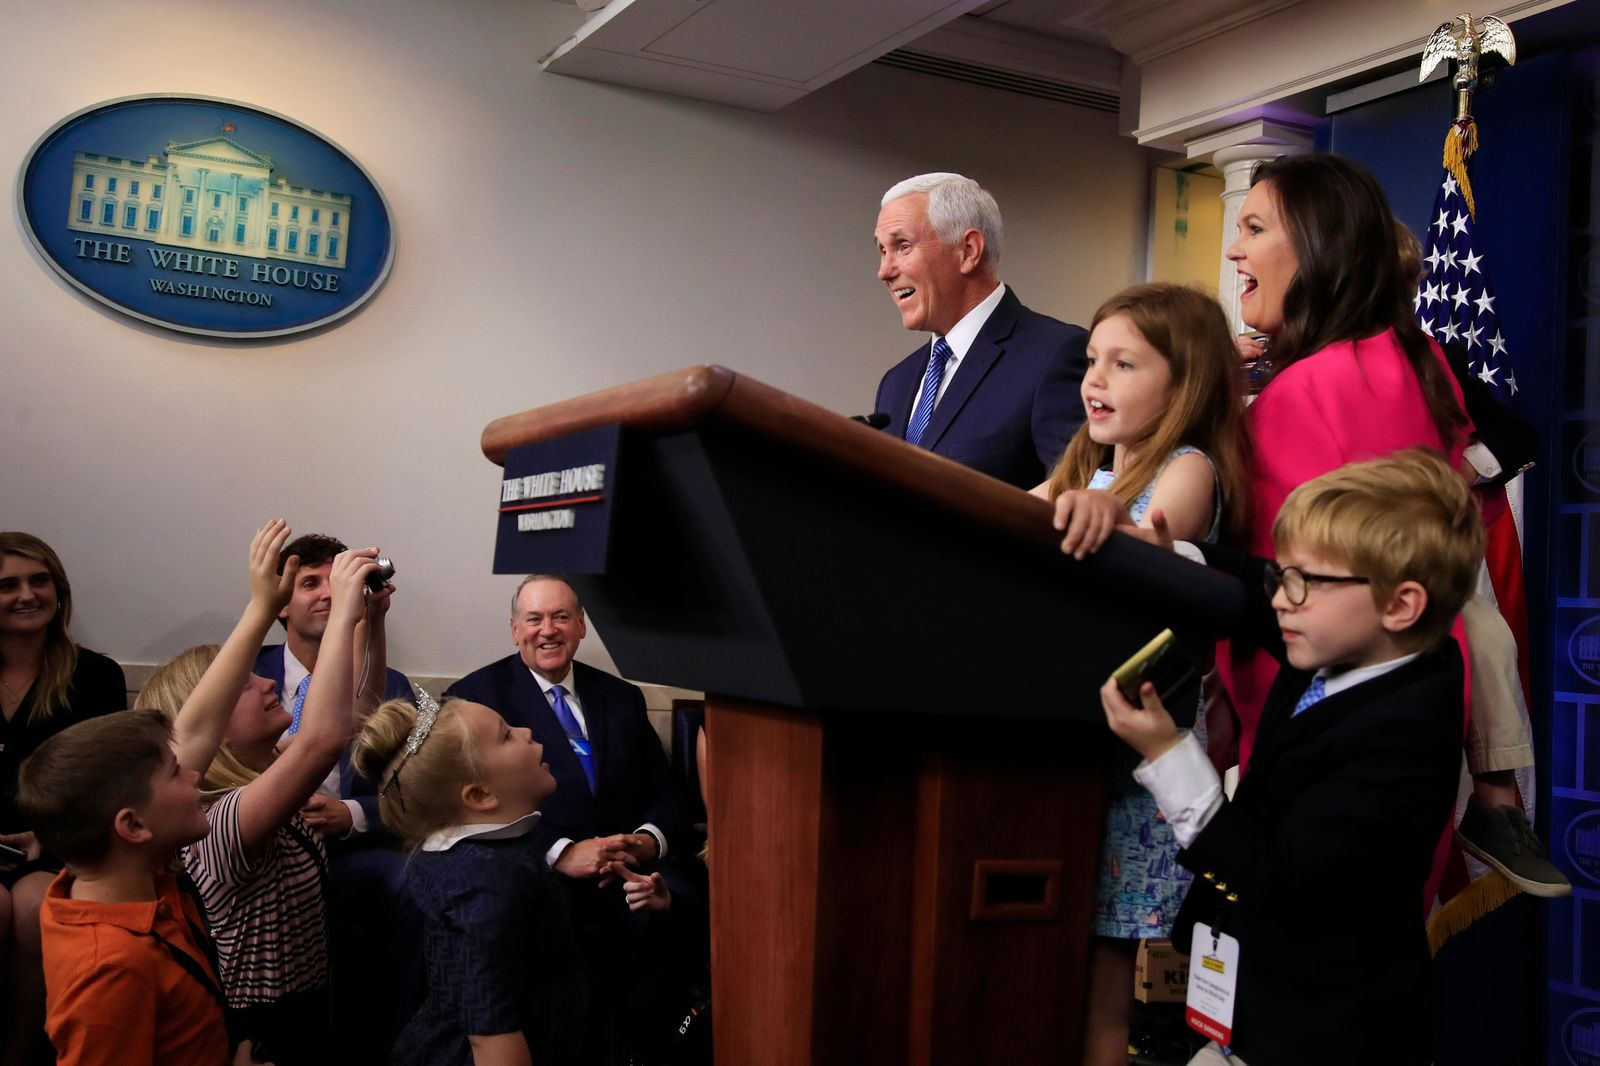 Vice President Mike Pence makes a surprise appearance as White House press secretary Sarah Huckabee Sanders conducts a briefing for children of journalists and White House staff in the Brady press briefing room at the White House in Washington, Thursday, April 25, 2019, to commemorate Take Our Daughters and Sons to Work Day. (AP Photo/Manuel Balce Ceneta)